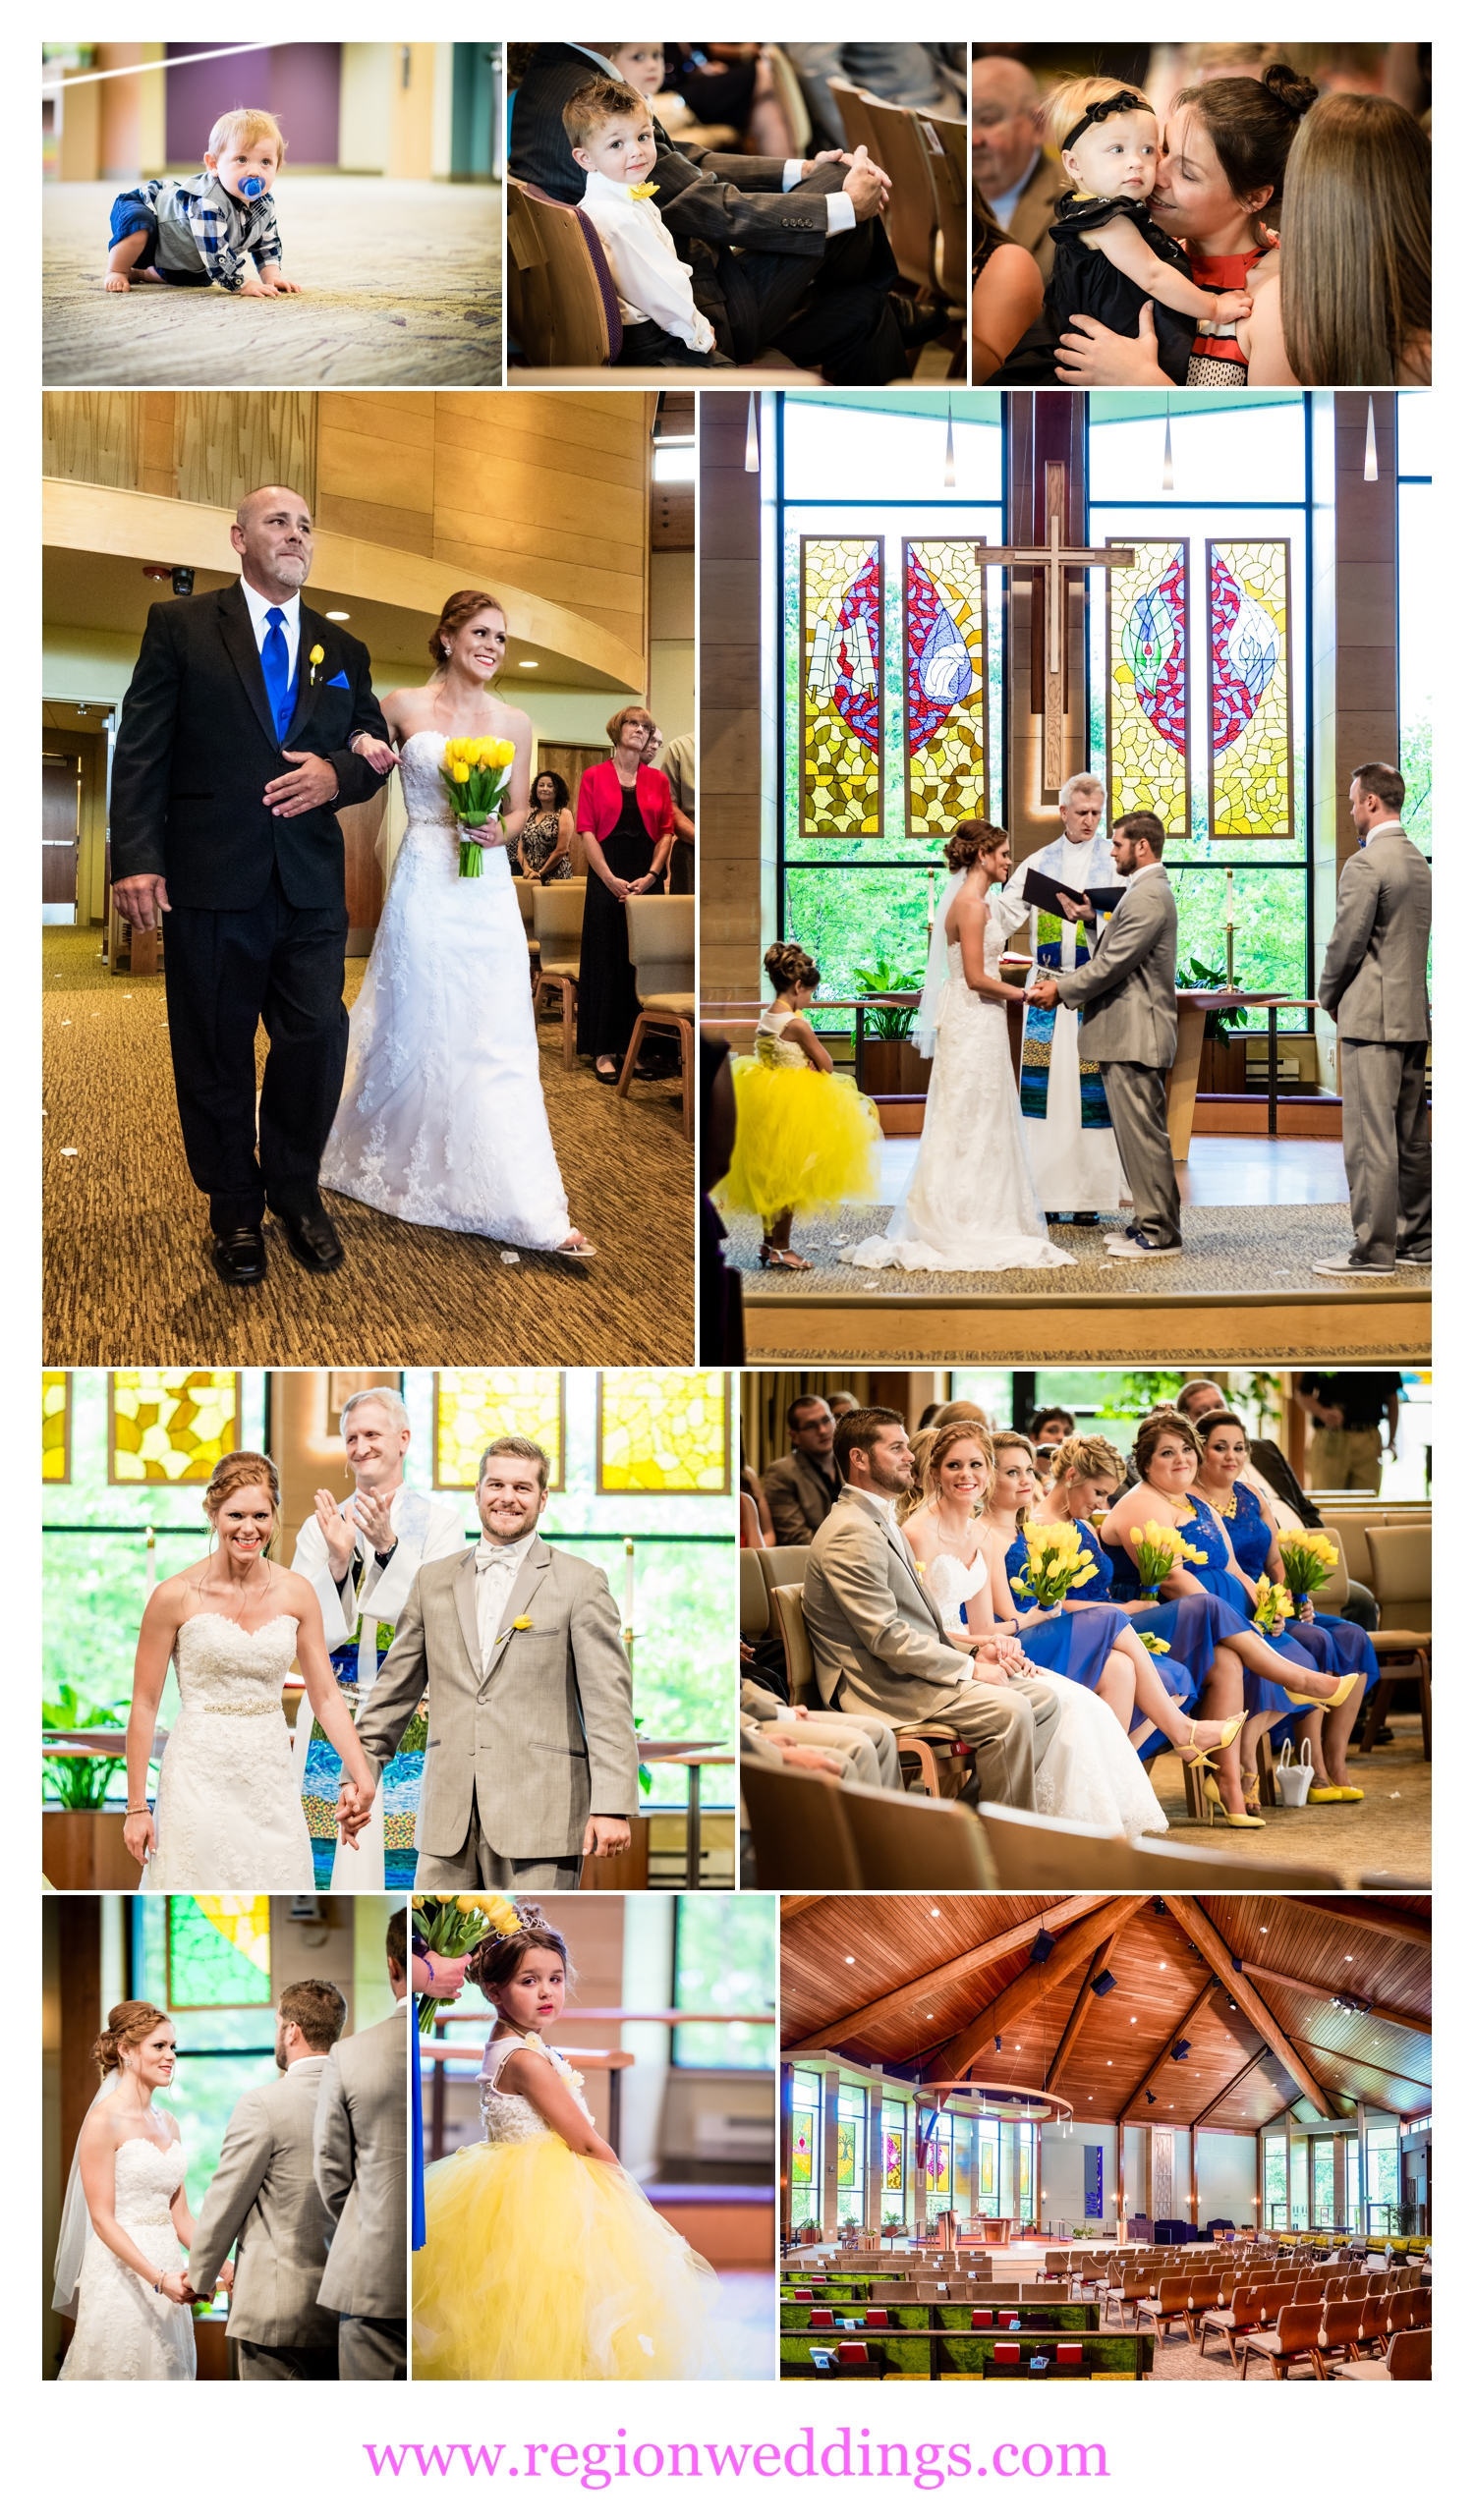 A wedding ceremony at Christ Lutheran Church.